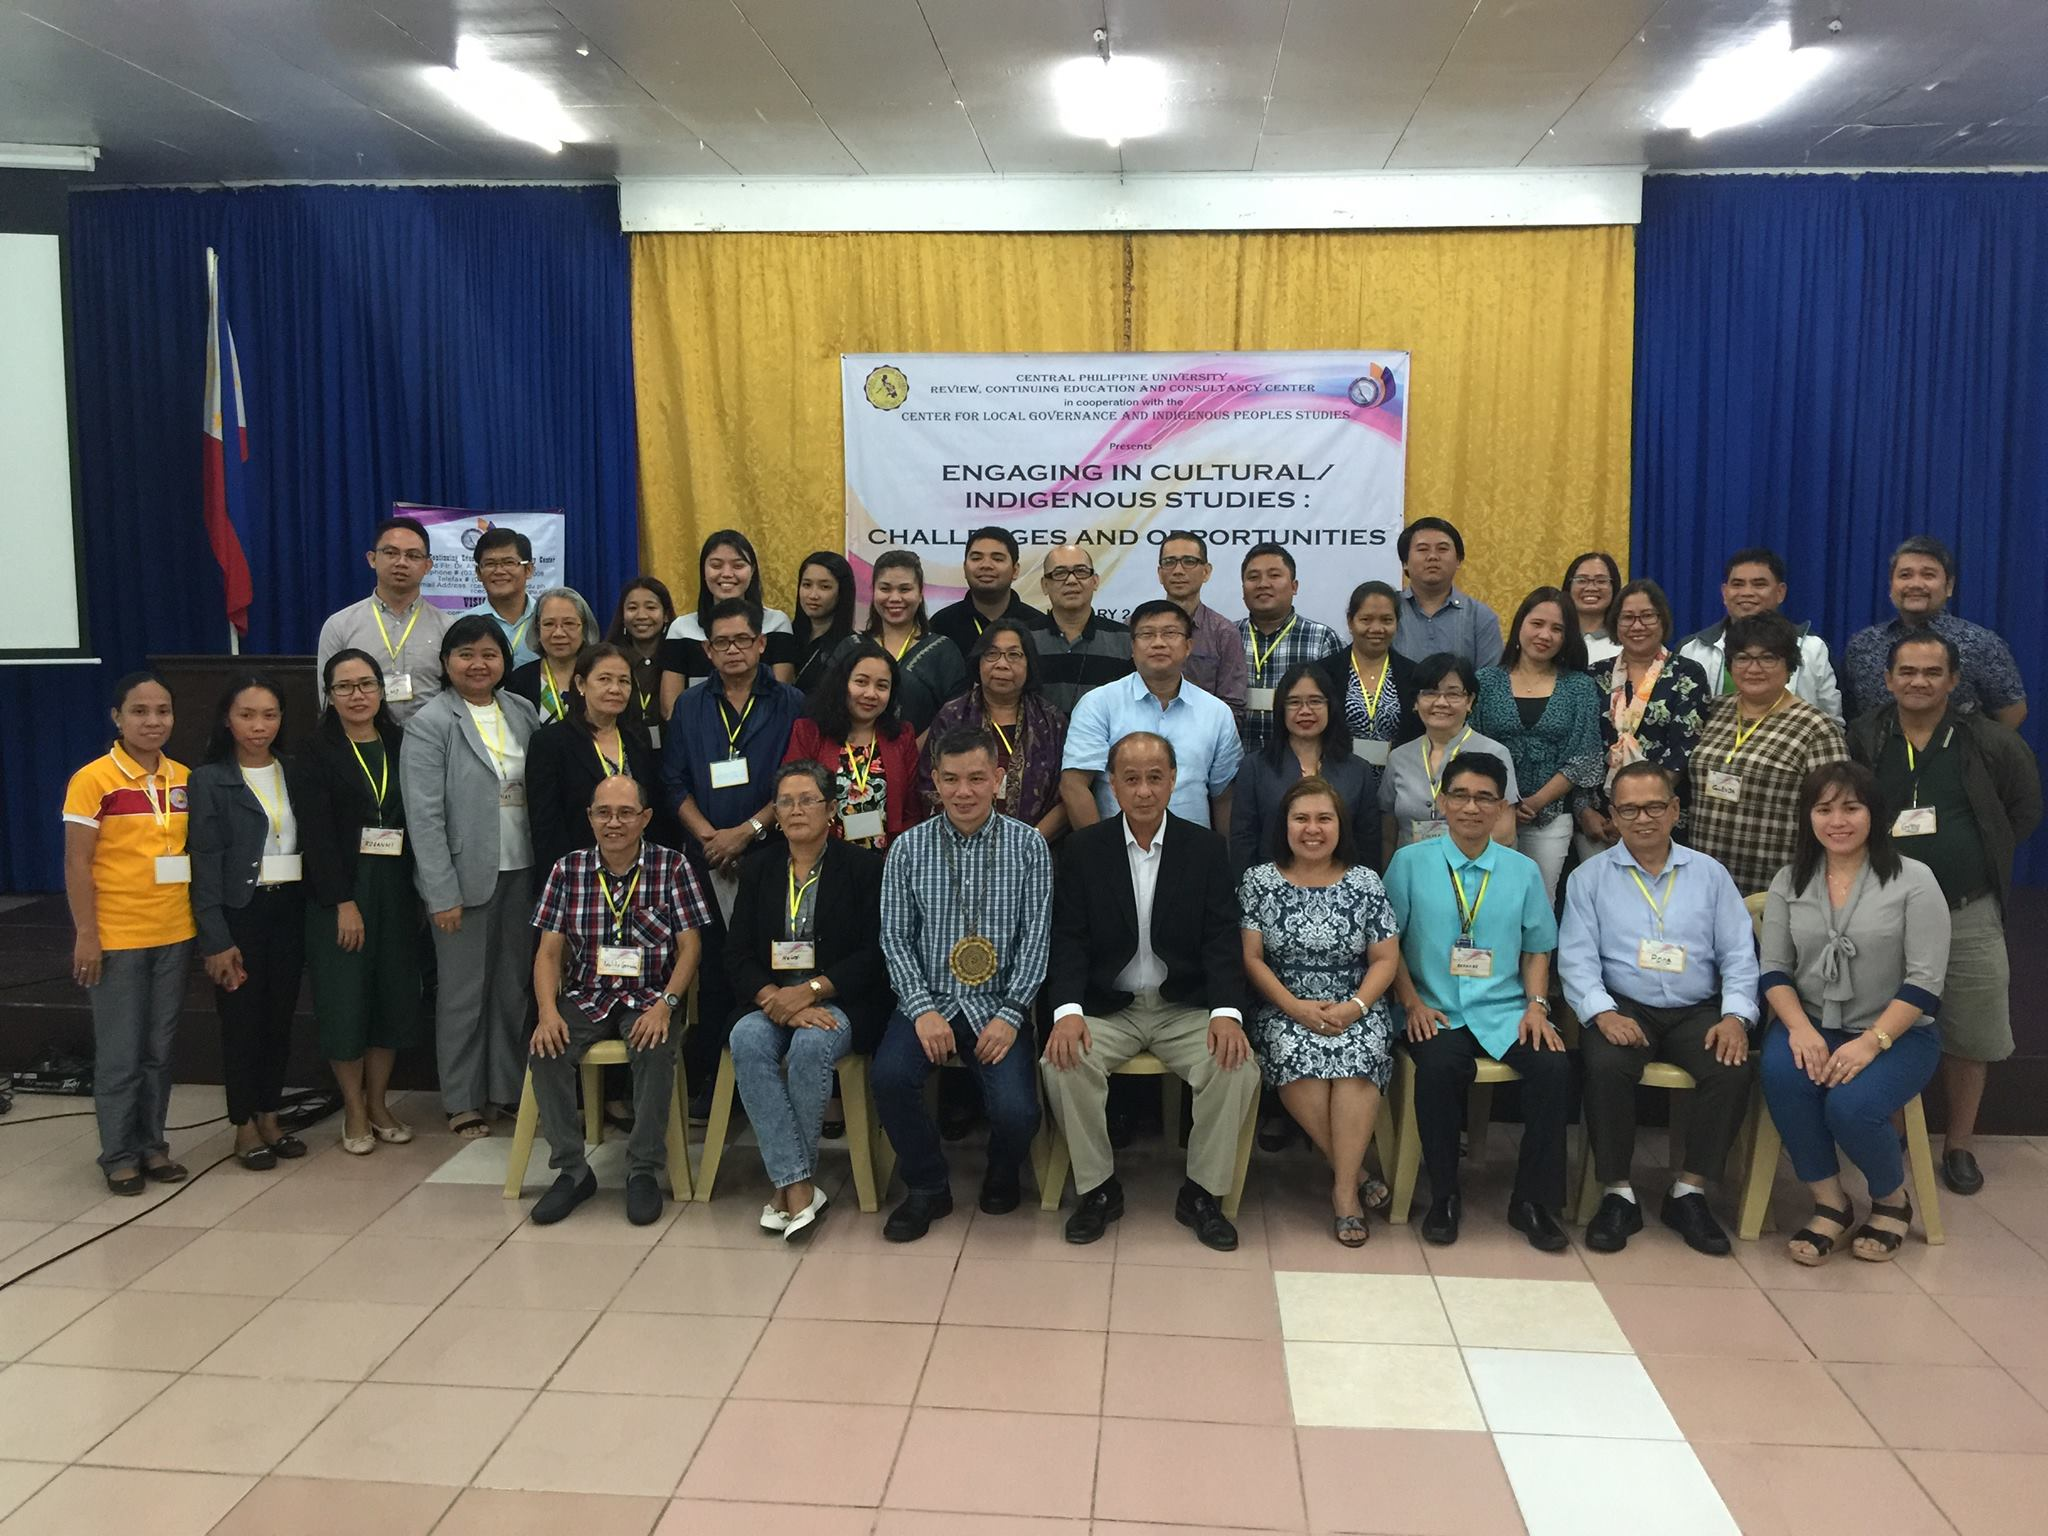 RCECC holds seminar on Indigenous Cultural Engagement